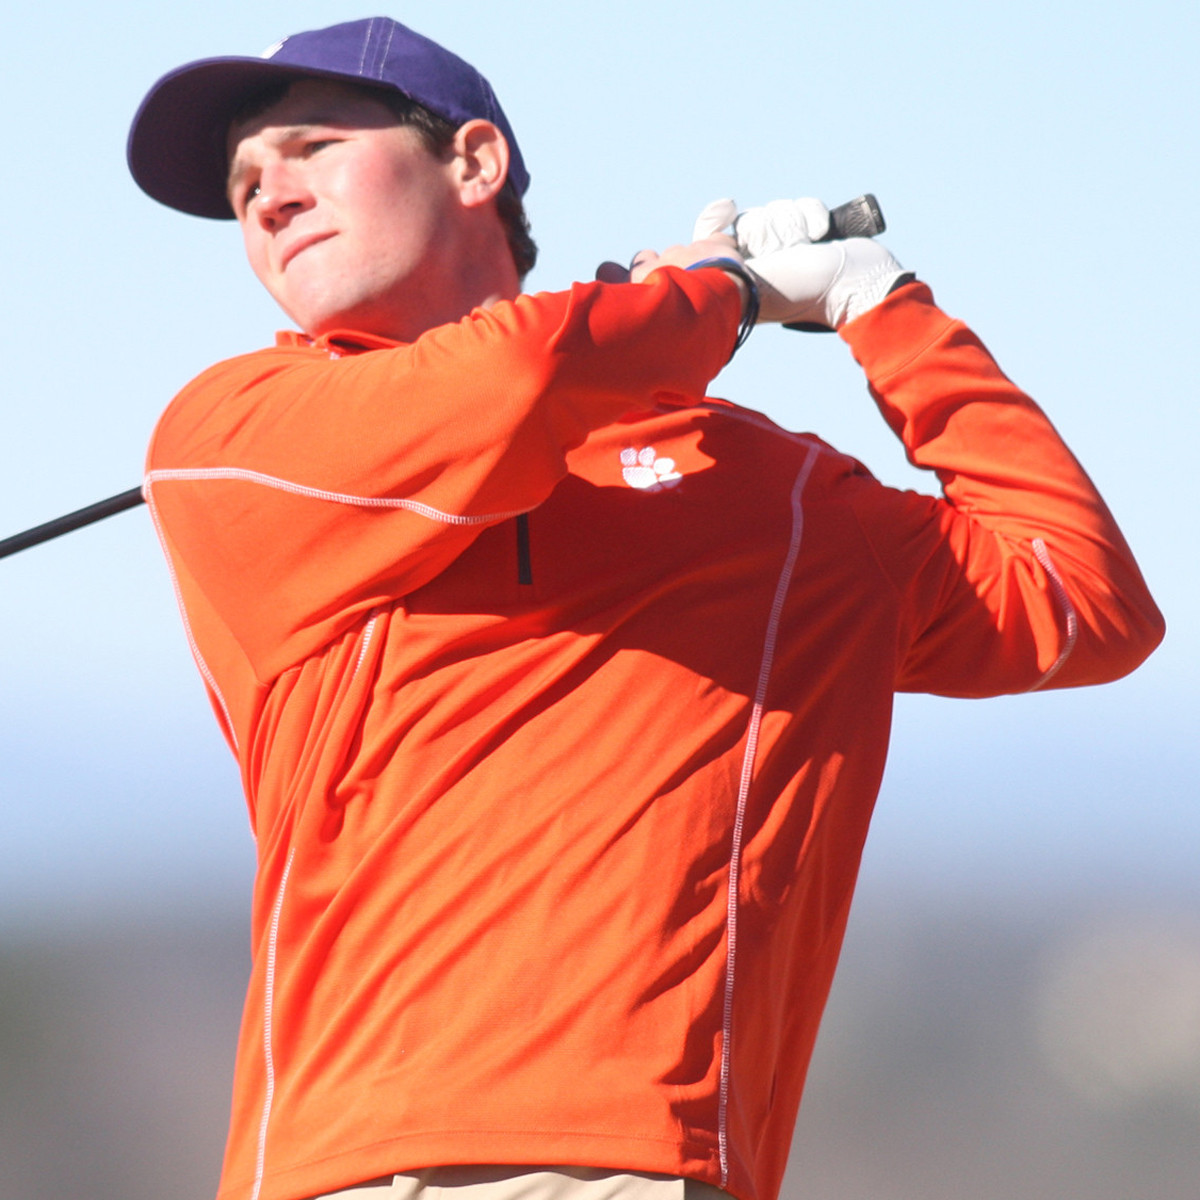 Capps Poised to Reach Match Play